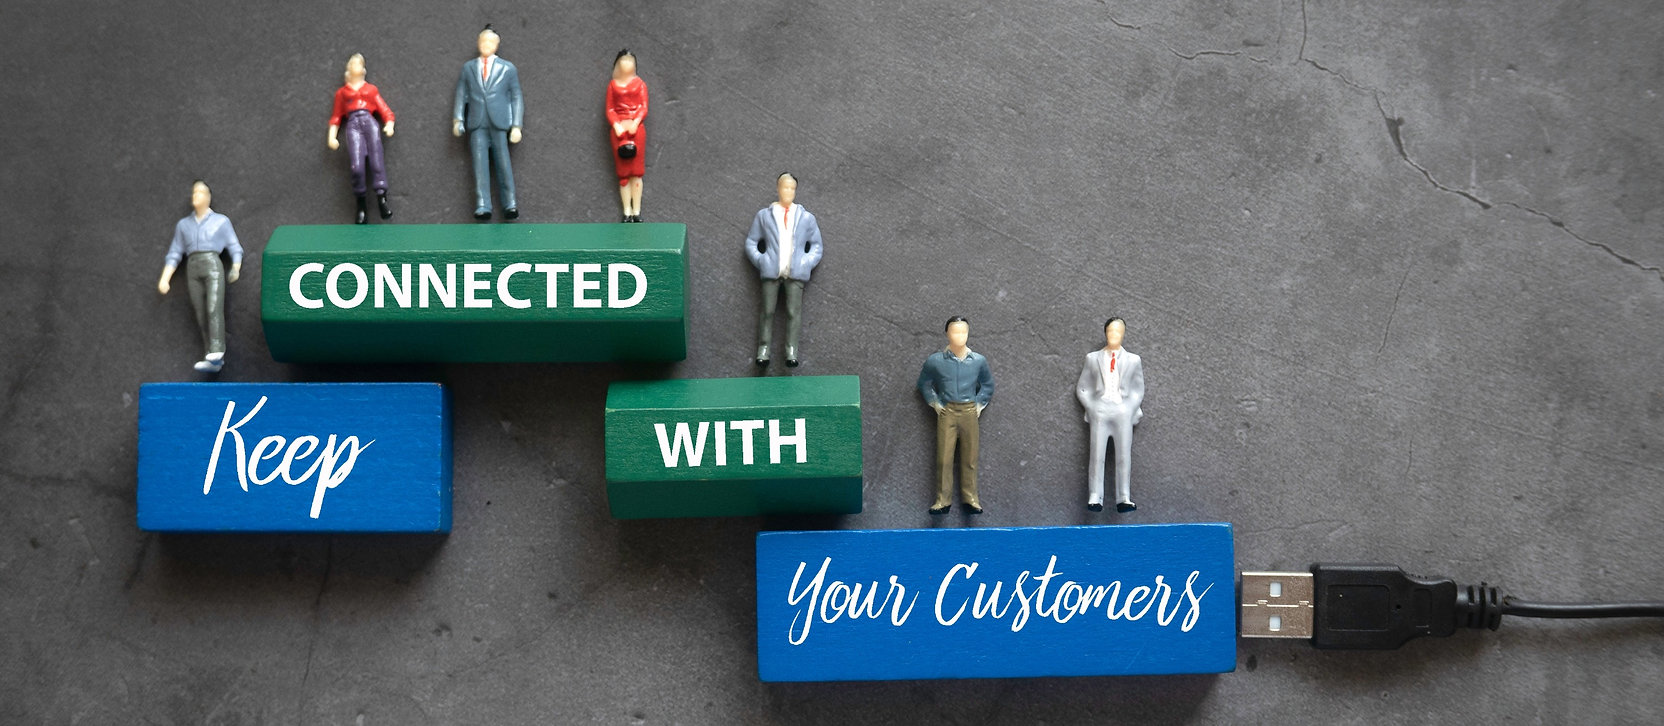 keep-connected-with-your-customer-concep